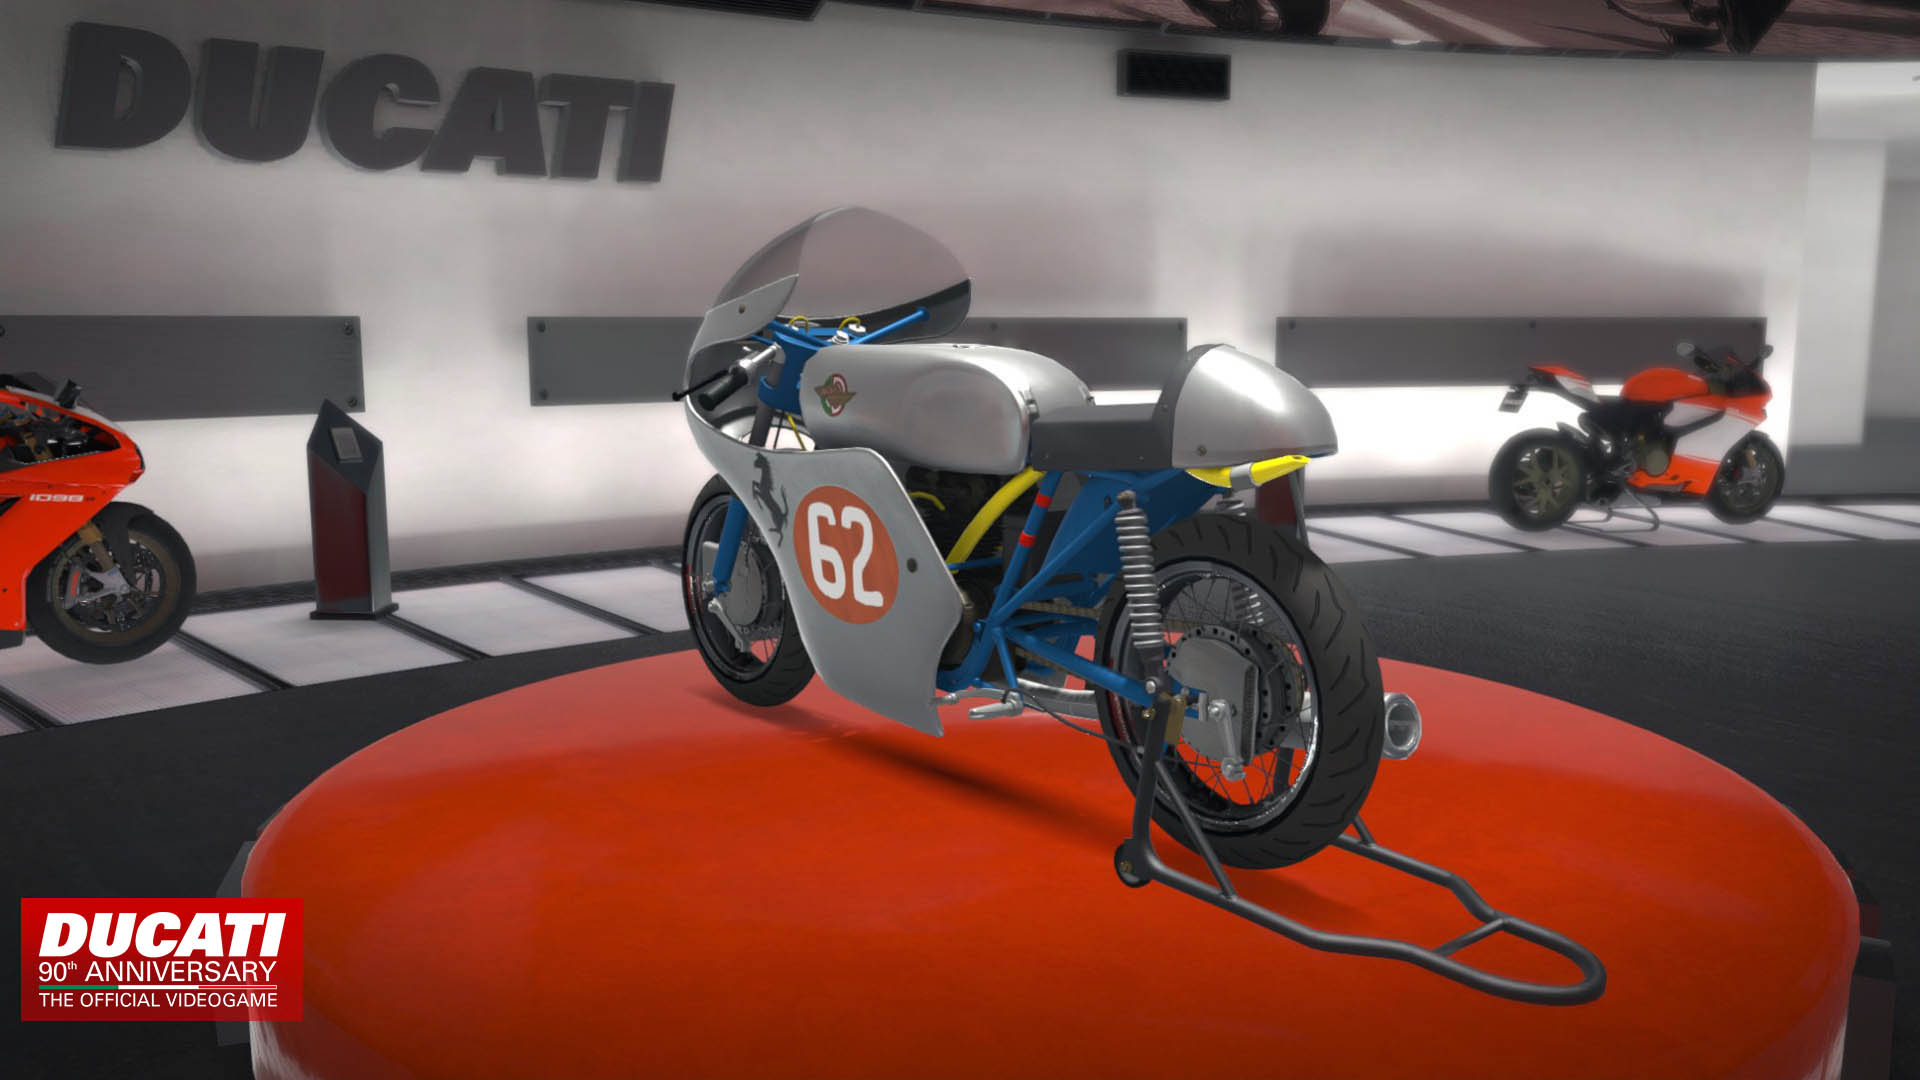 Ducati 90th Anniversary the Official Videogame 2